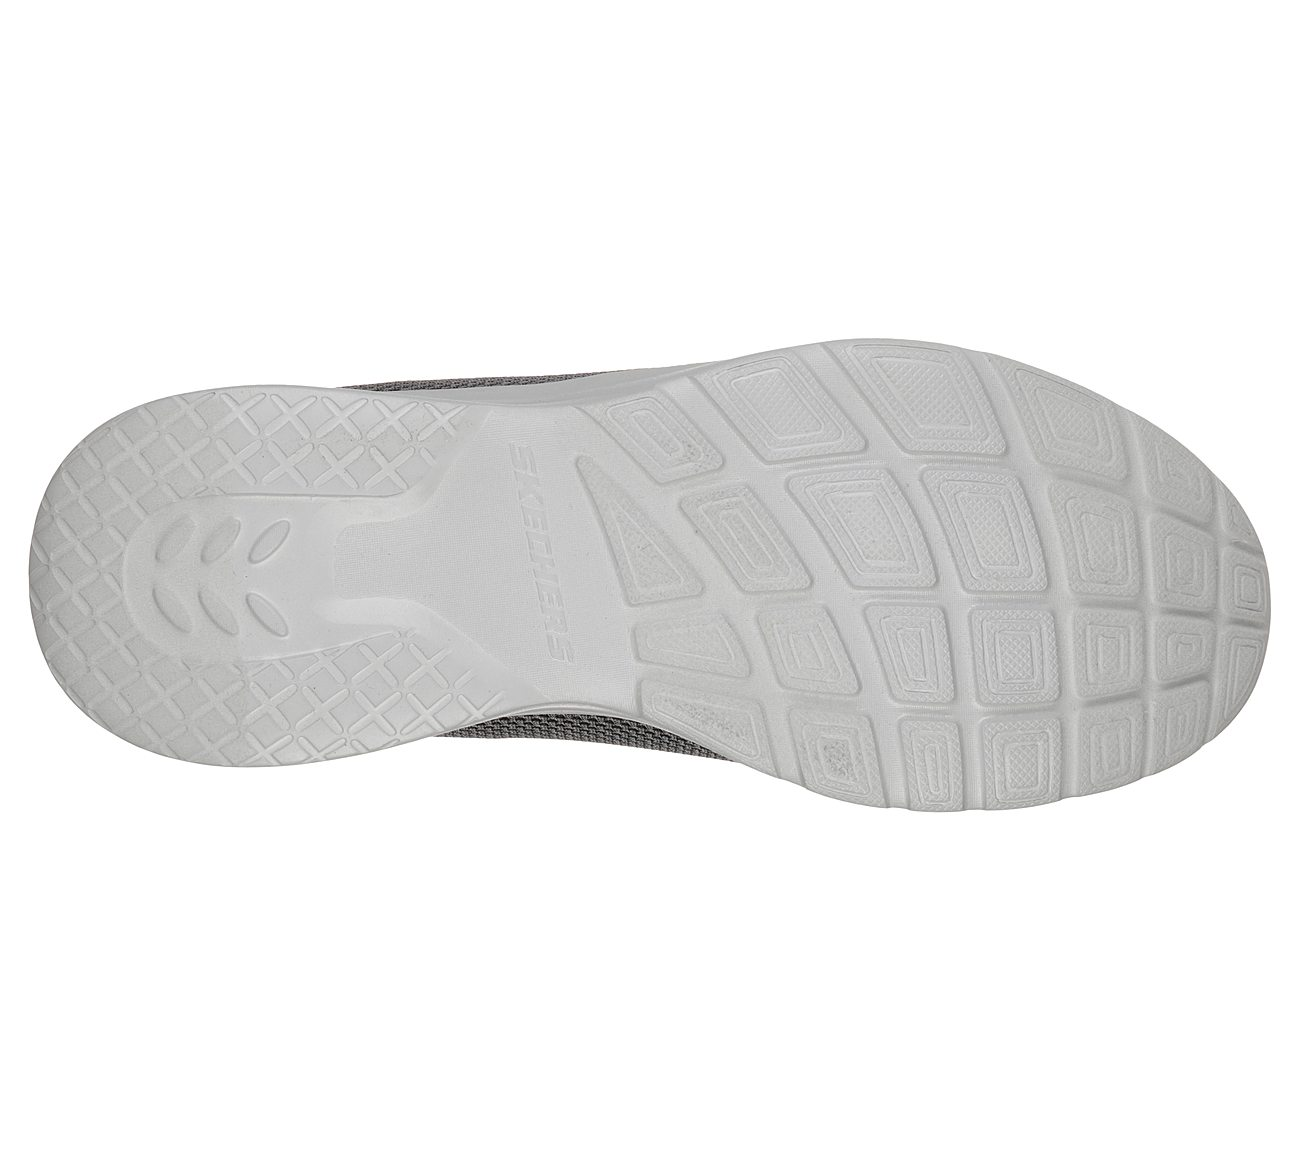 89a6c63f Buy SKECHERS Dynamight 2.0 - Bywood SKECHERS Sport Shoes only £59.00